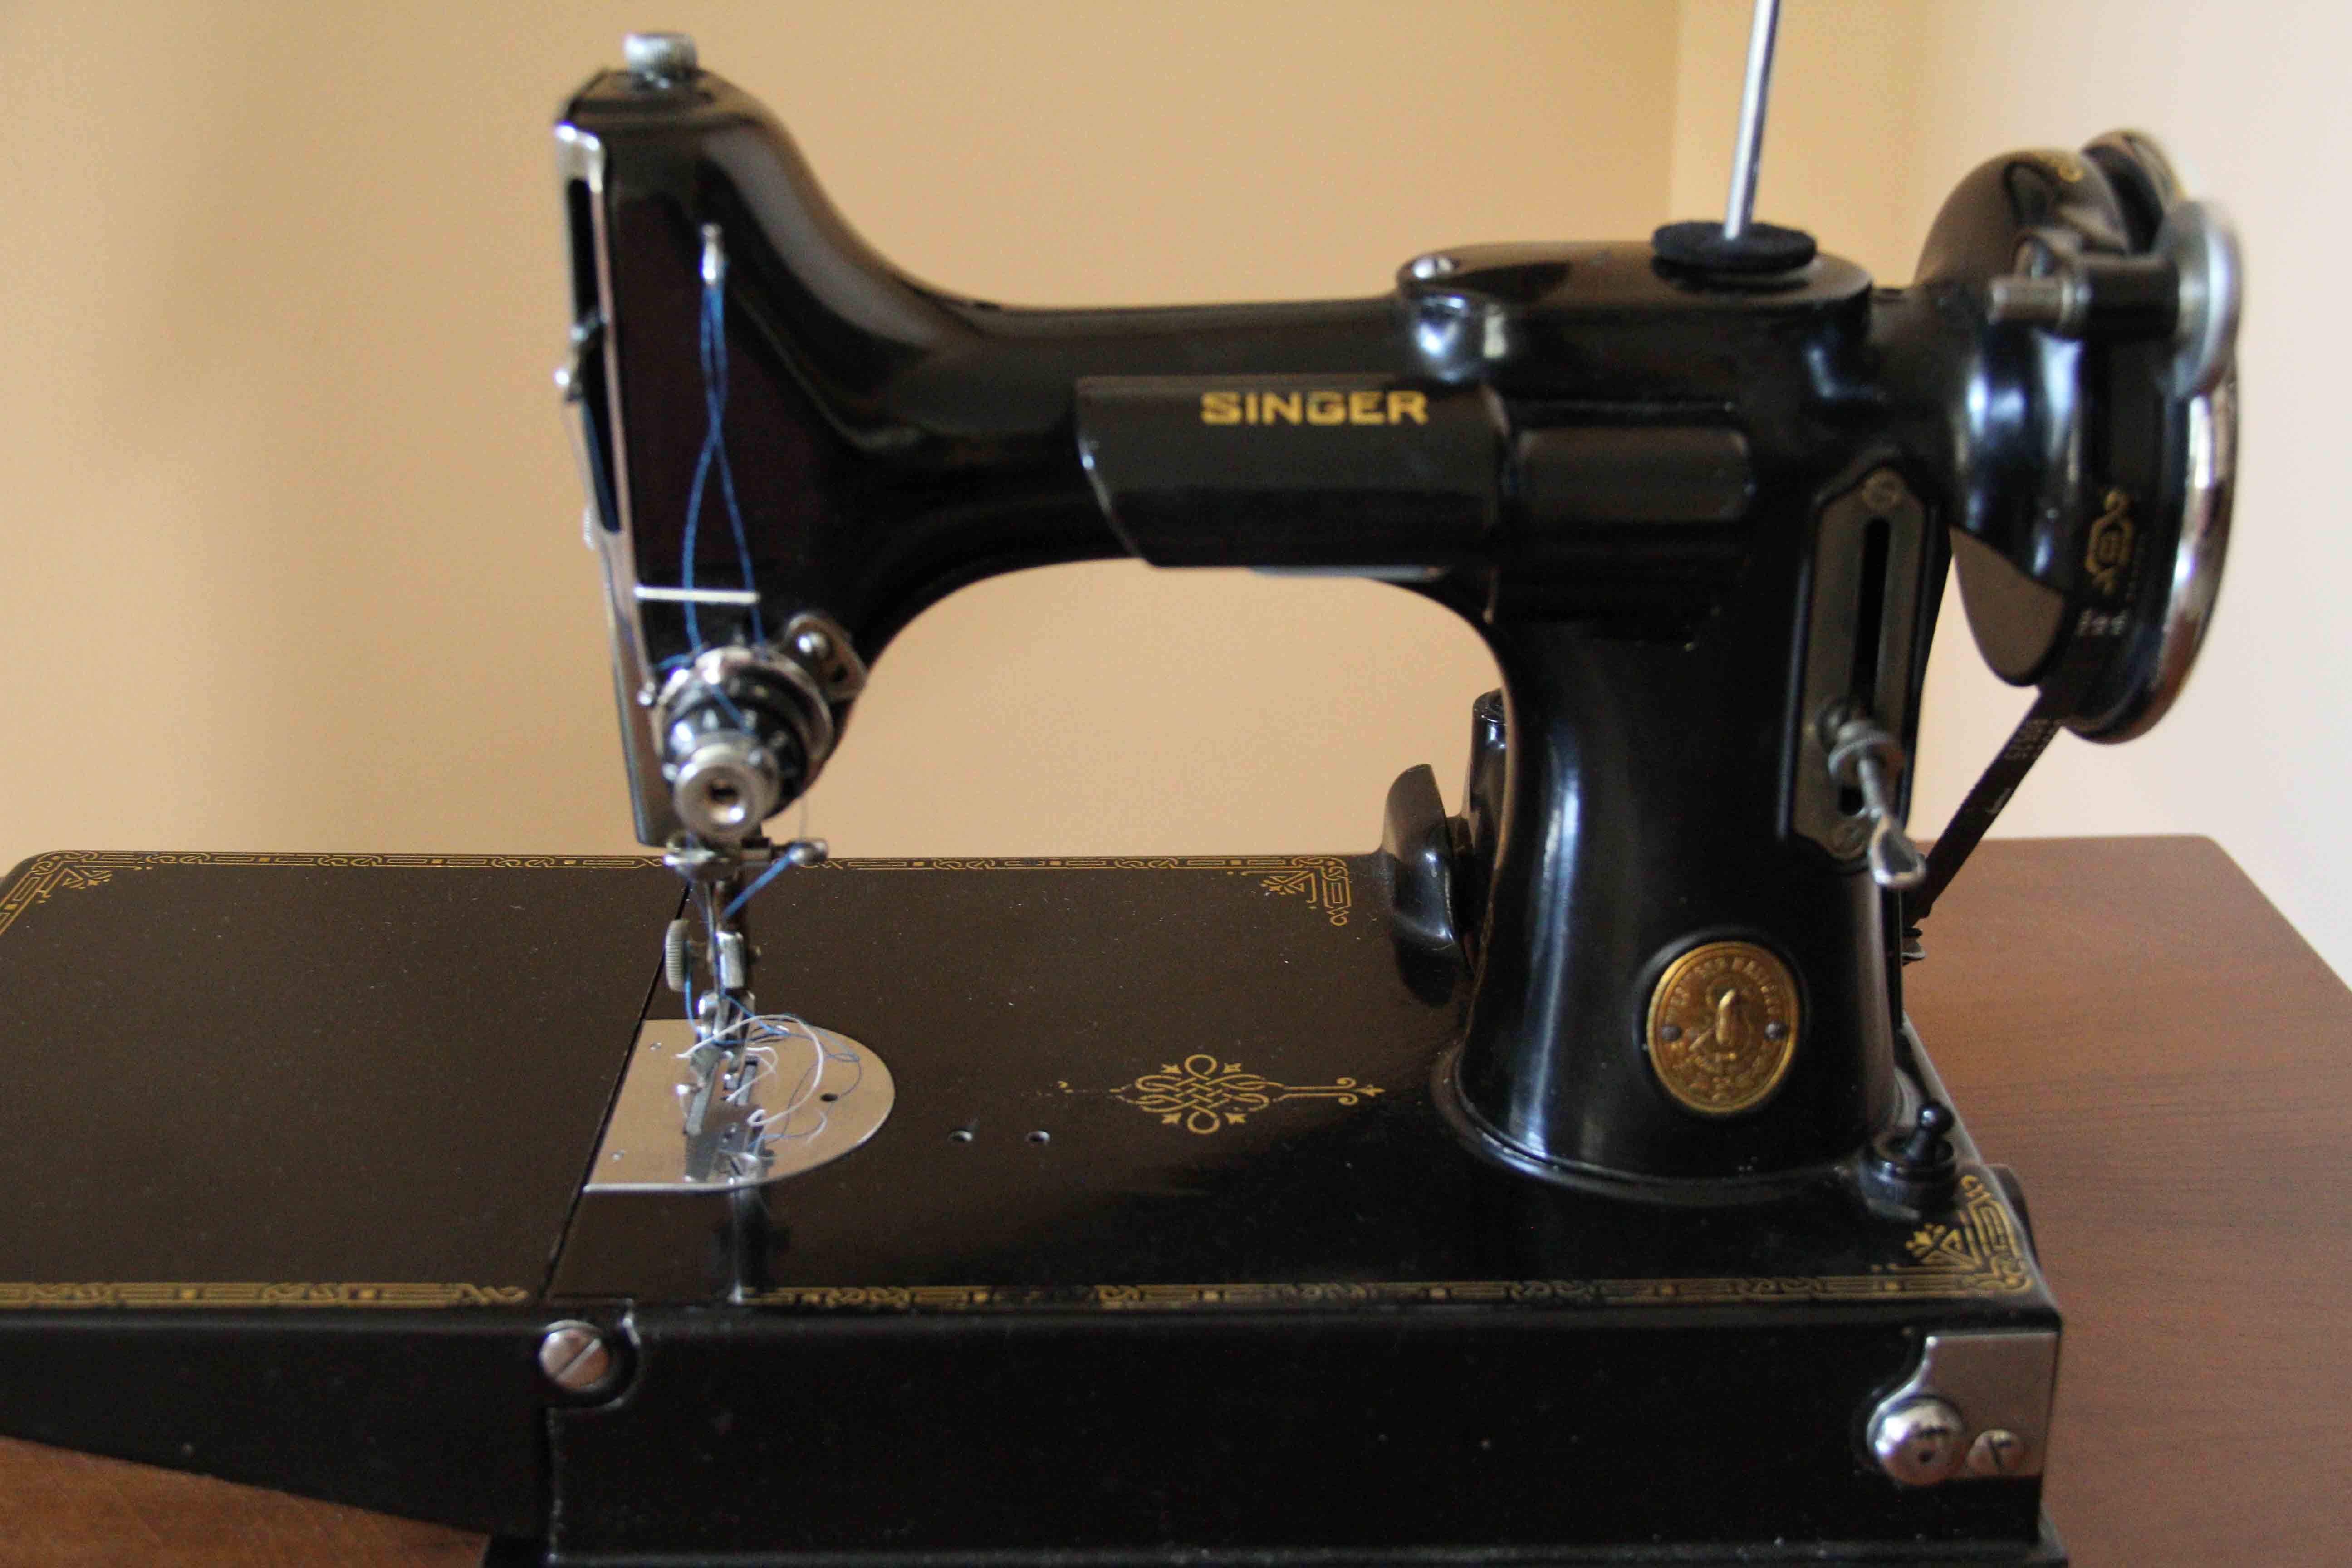 Singer Featherweight Machines for Sale